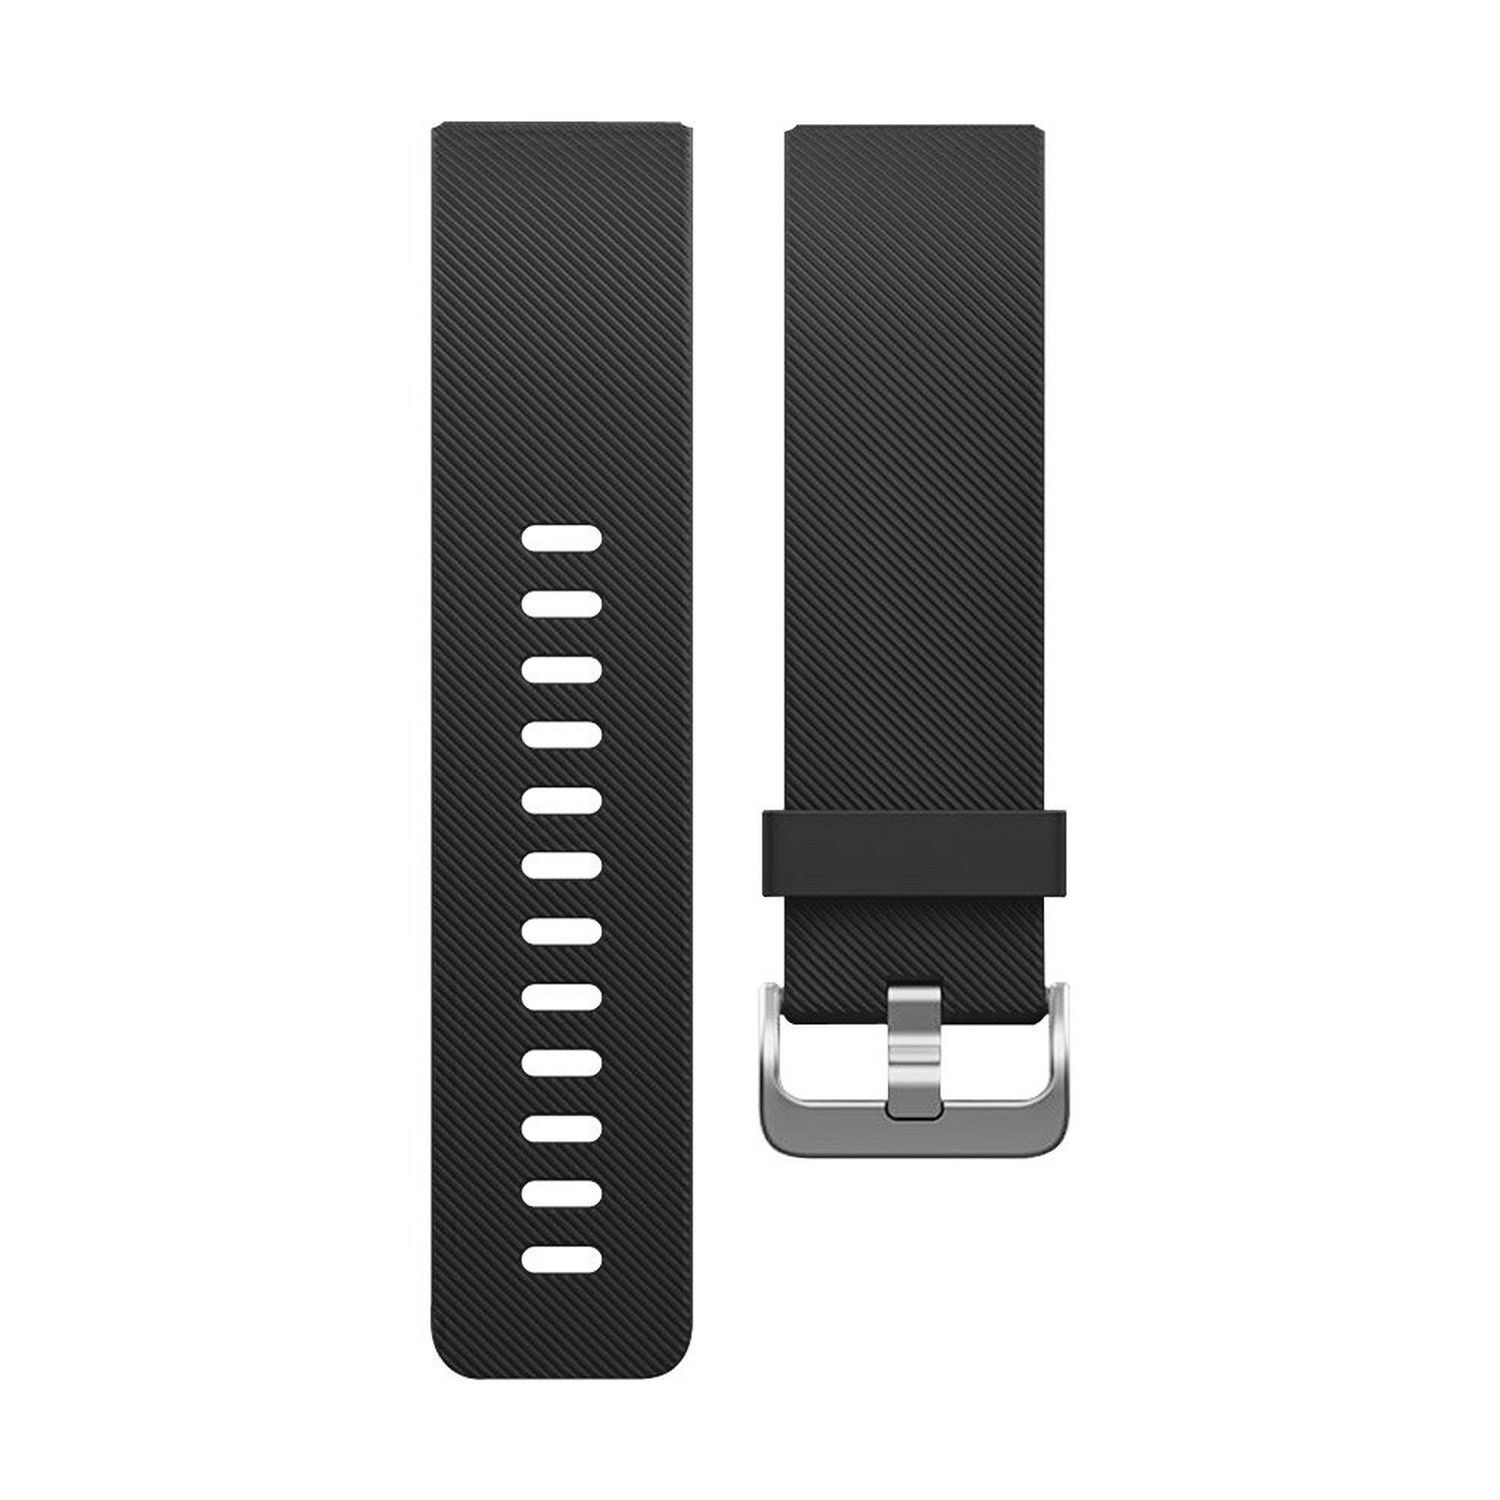 как выглядит Replacement Silicone Rubber Band Strap Wristband Bracelet For Fitbit Blaze фото